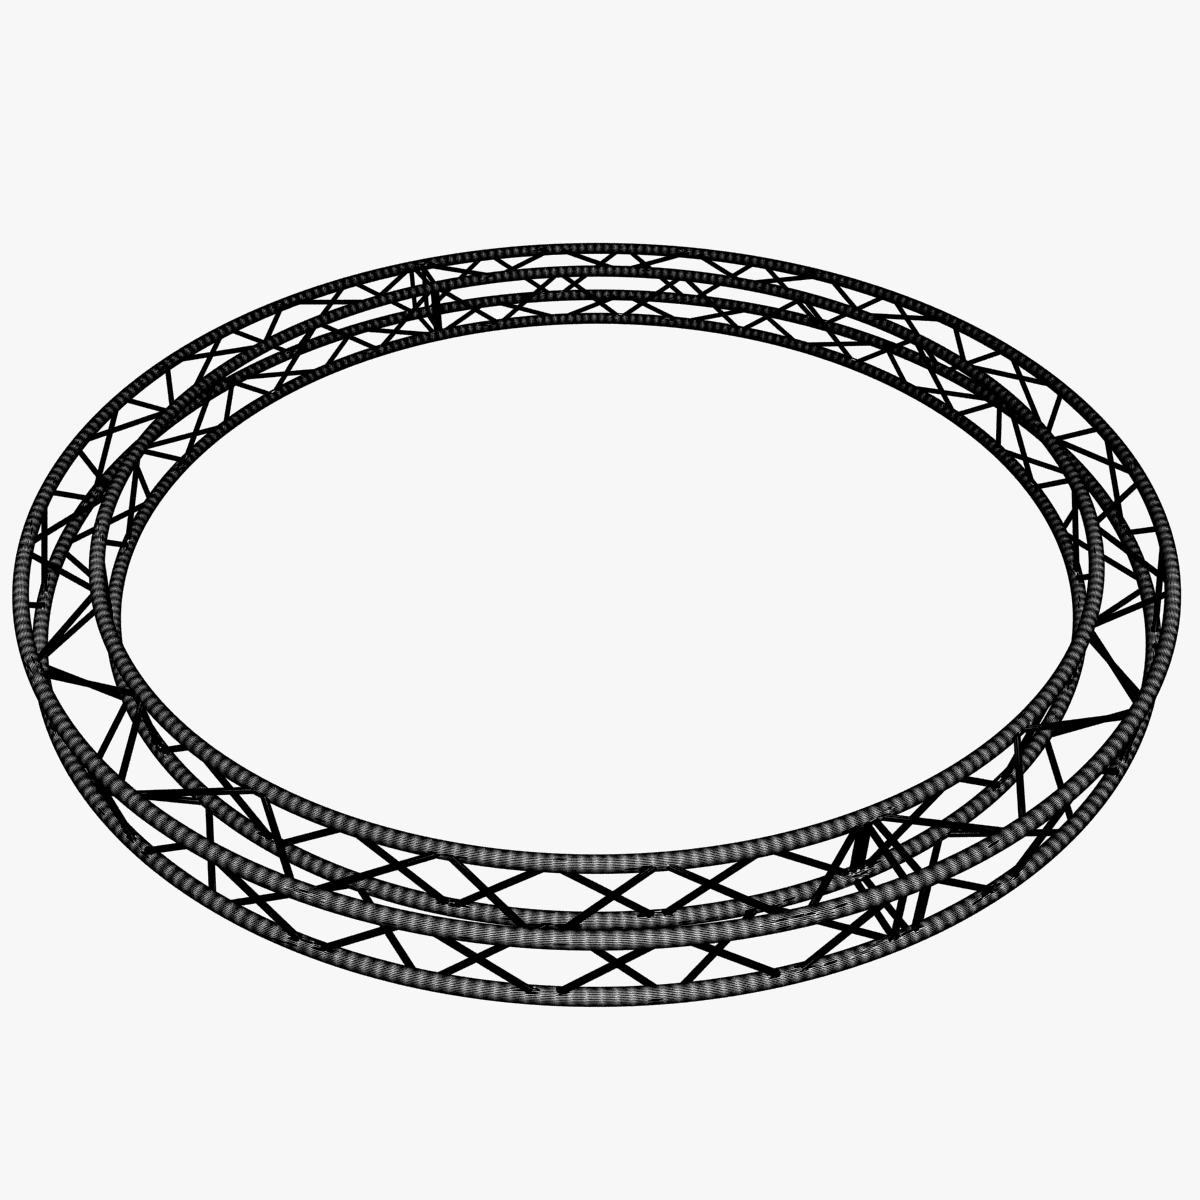 circle square truss (400cm) 3d model max fbx obj 218637